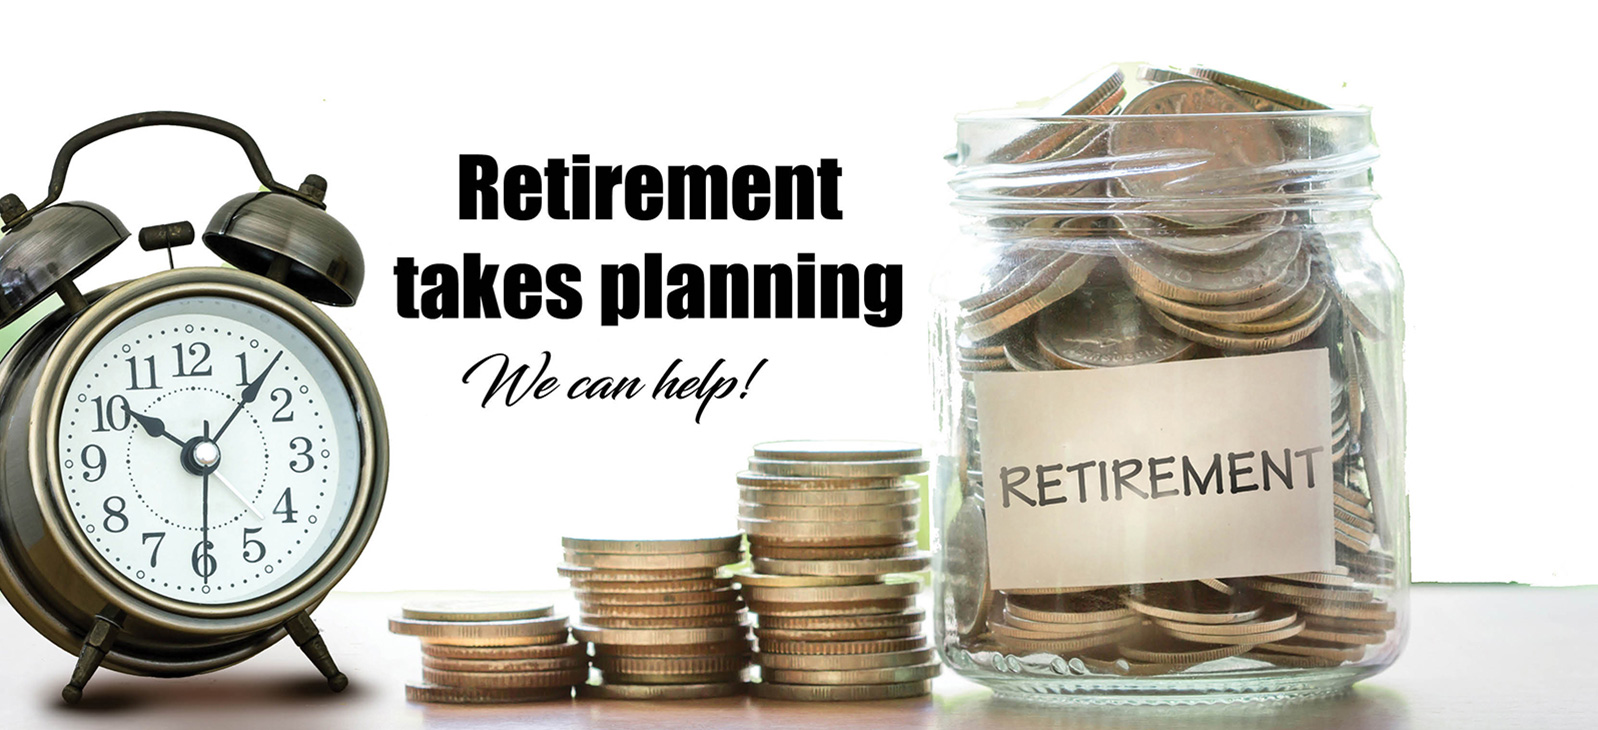 Retirement takes planning. We can help!